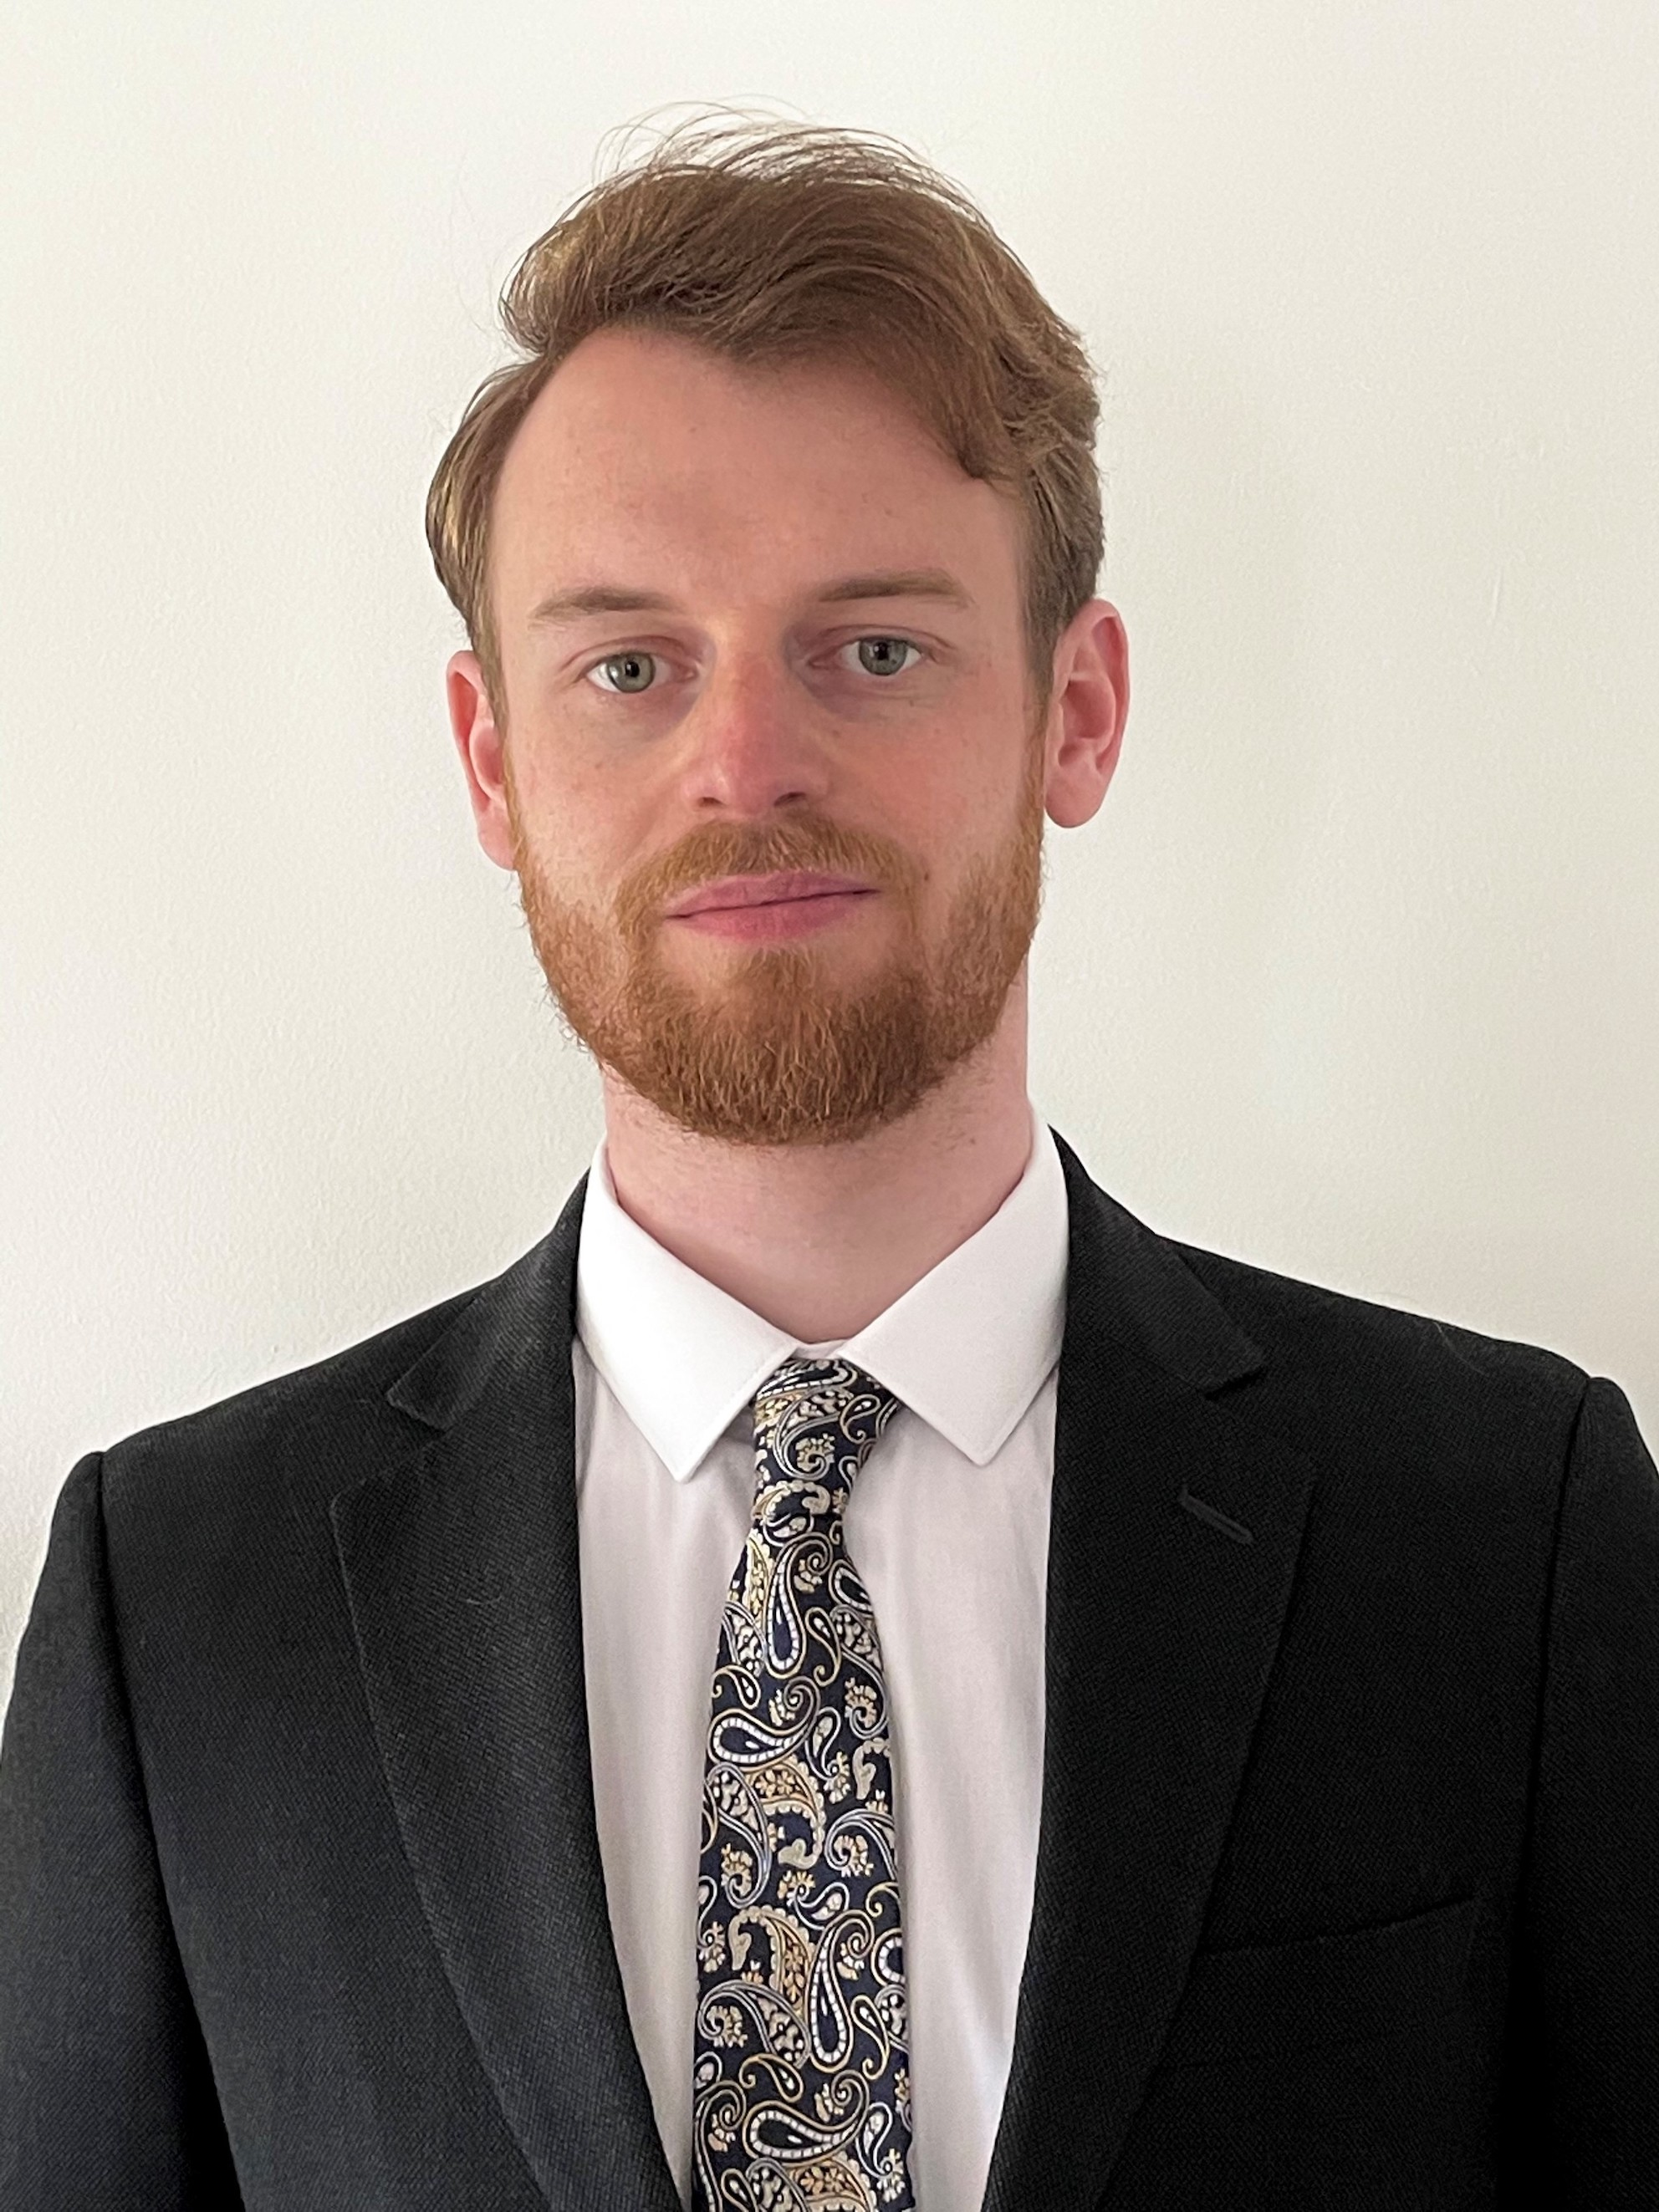 NELSONS BOLSTERS EXPERT WILLS AND PROBATE TEAM WITH NEW HIRE